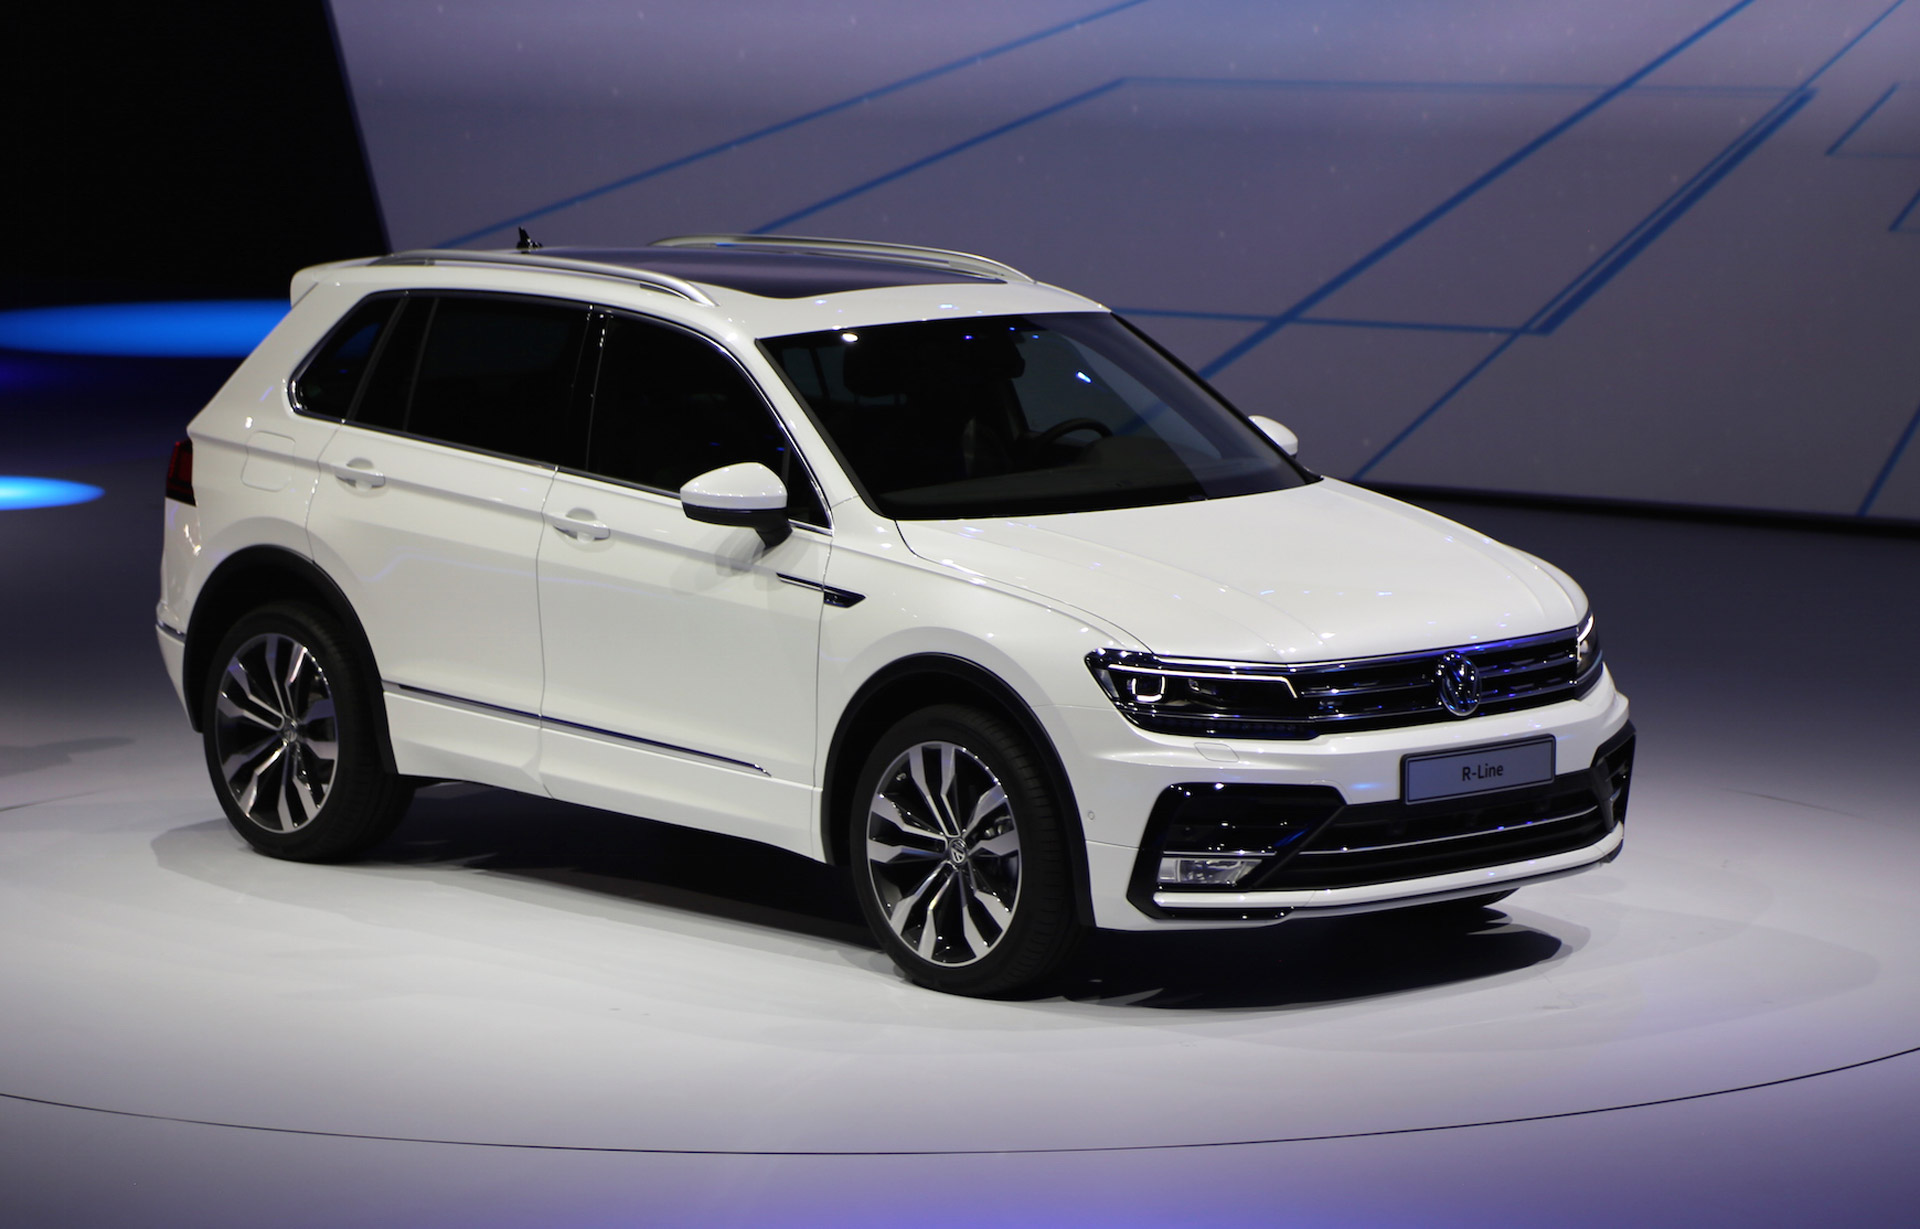 new volkswagen tiguan unveiled at 2015 frankfurt auto show. Black Bedroom Furniture Sets. Home Design Ideas